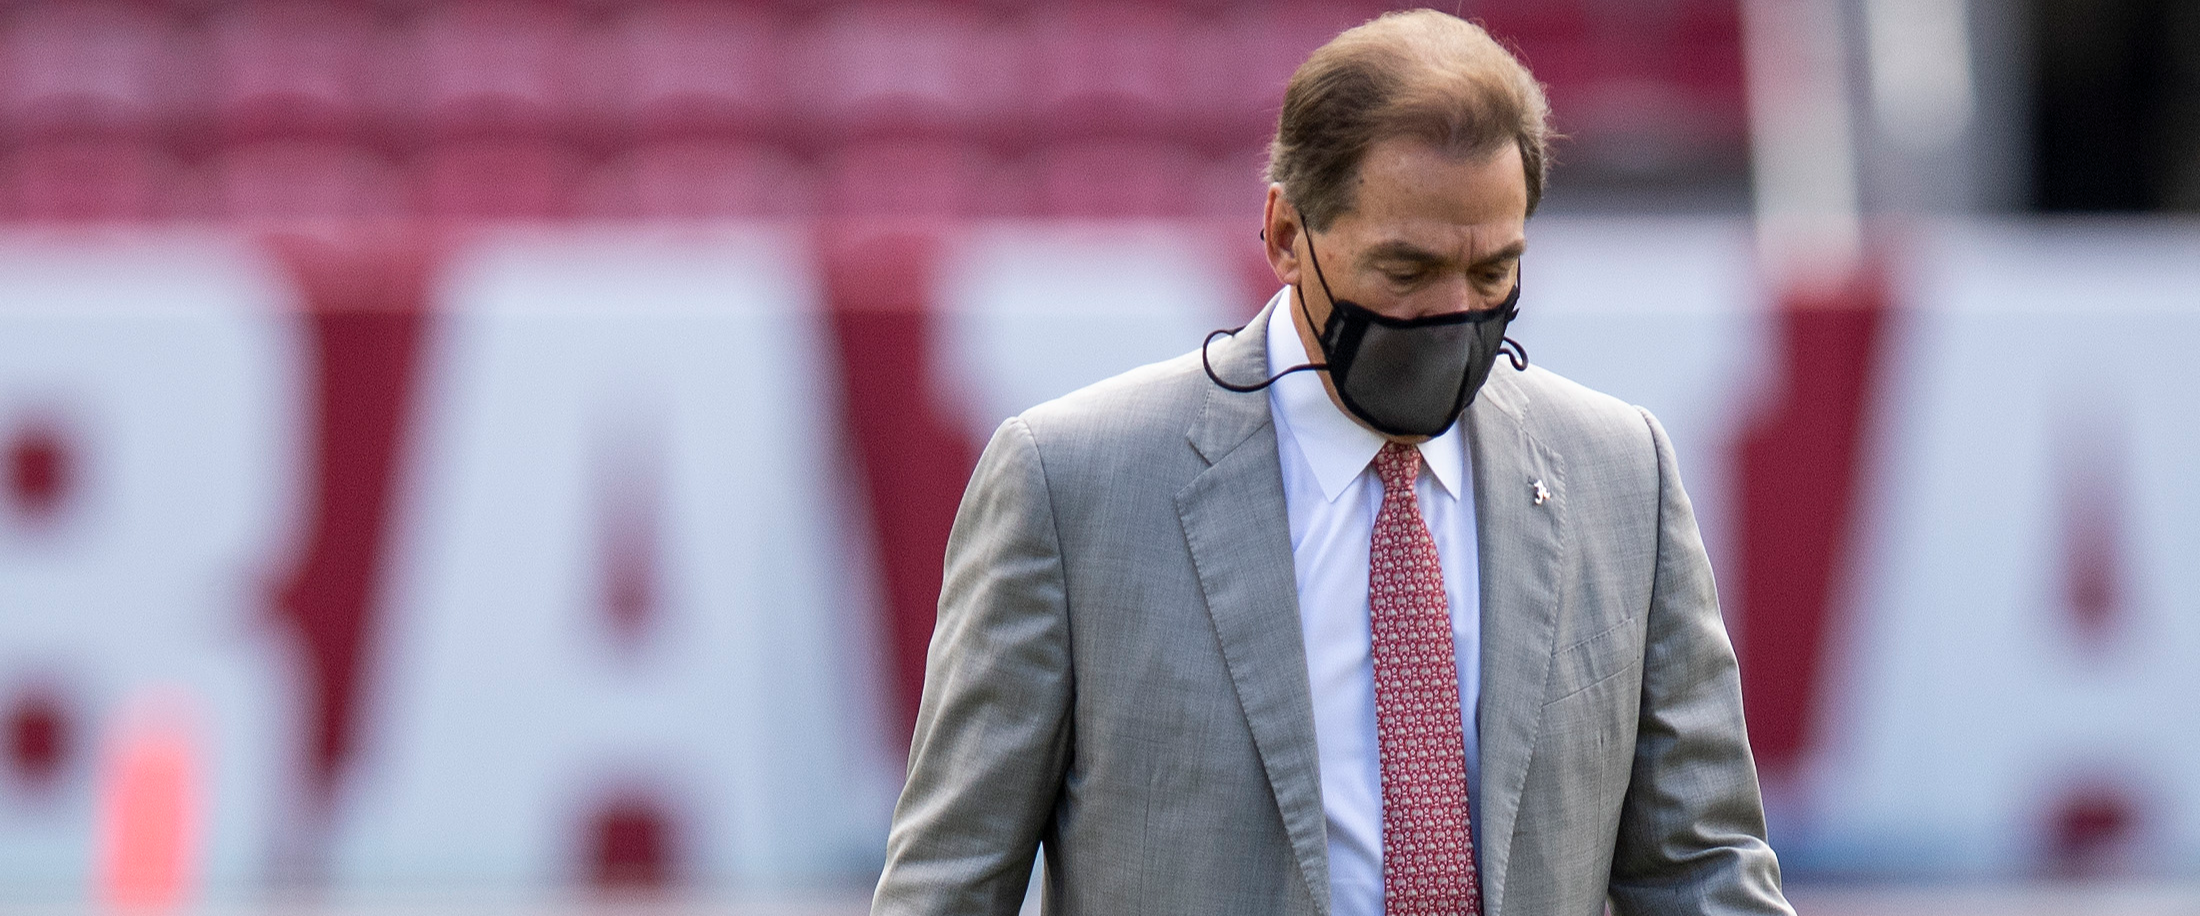 No Nick Saban for Alabama this weekend? No worries!